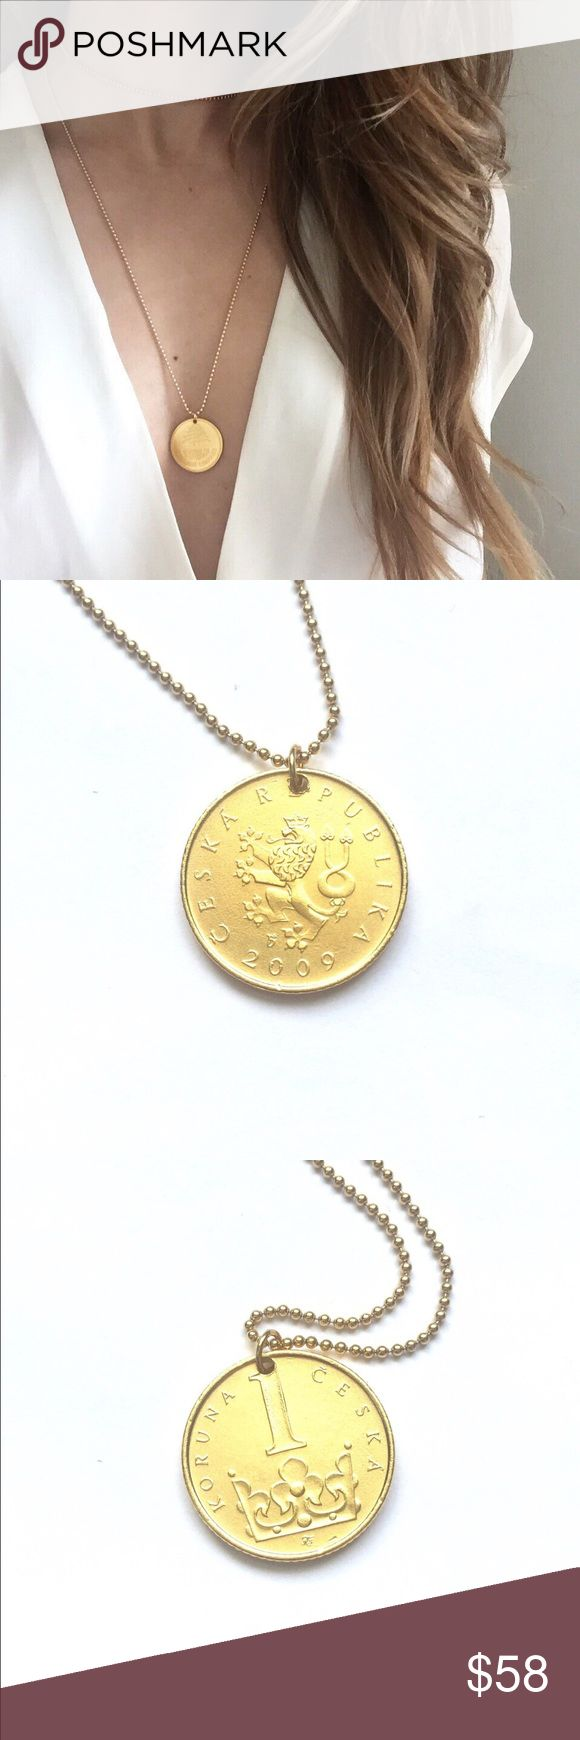 """Lovemyroots Czech Republic Gold Coin Necklace 32"""" long gold filled ball chain necklace with a gold dipped real coin as pendant. Lovemyroots Jewelry Necklaces"""